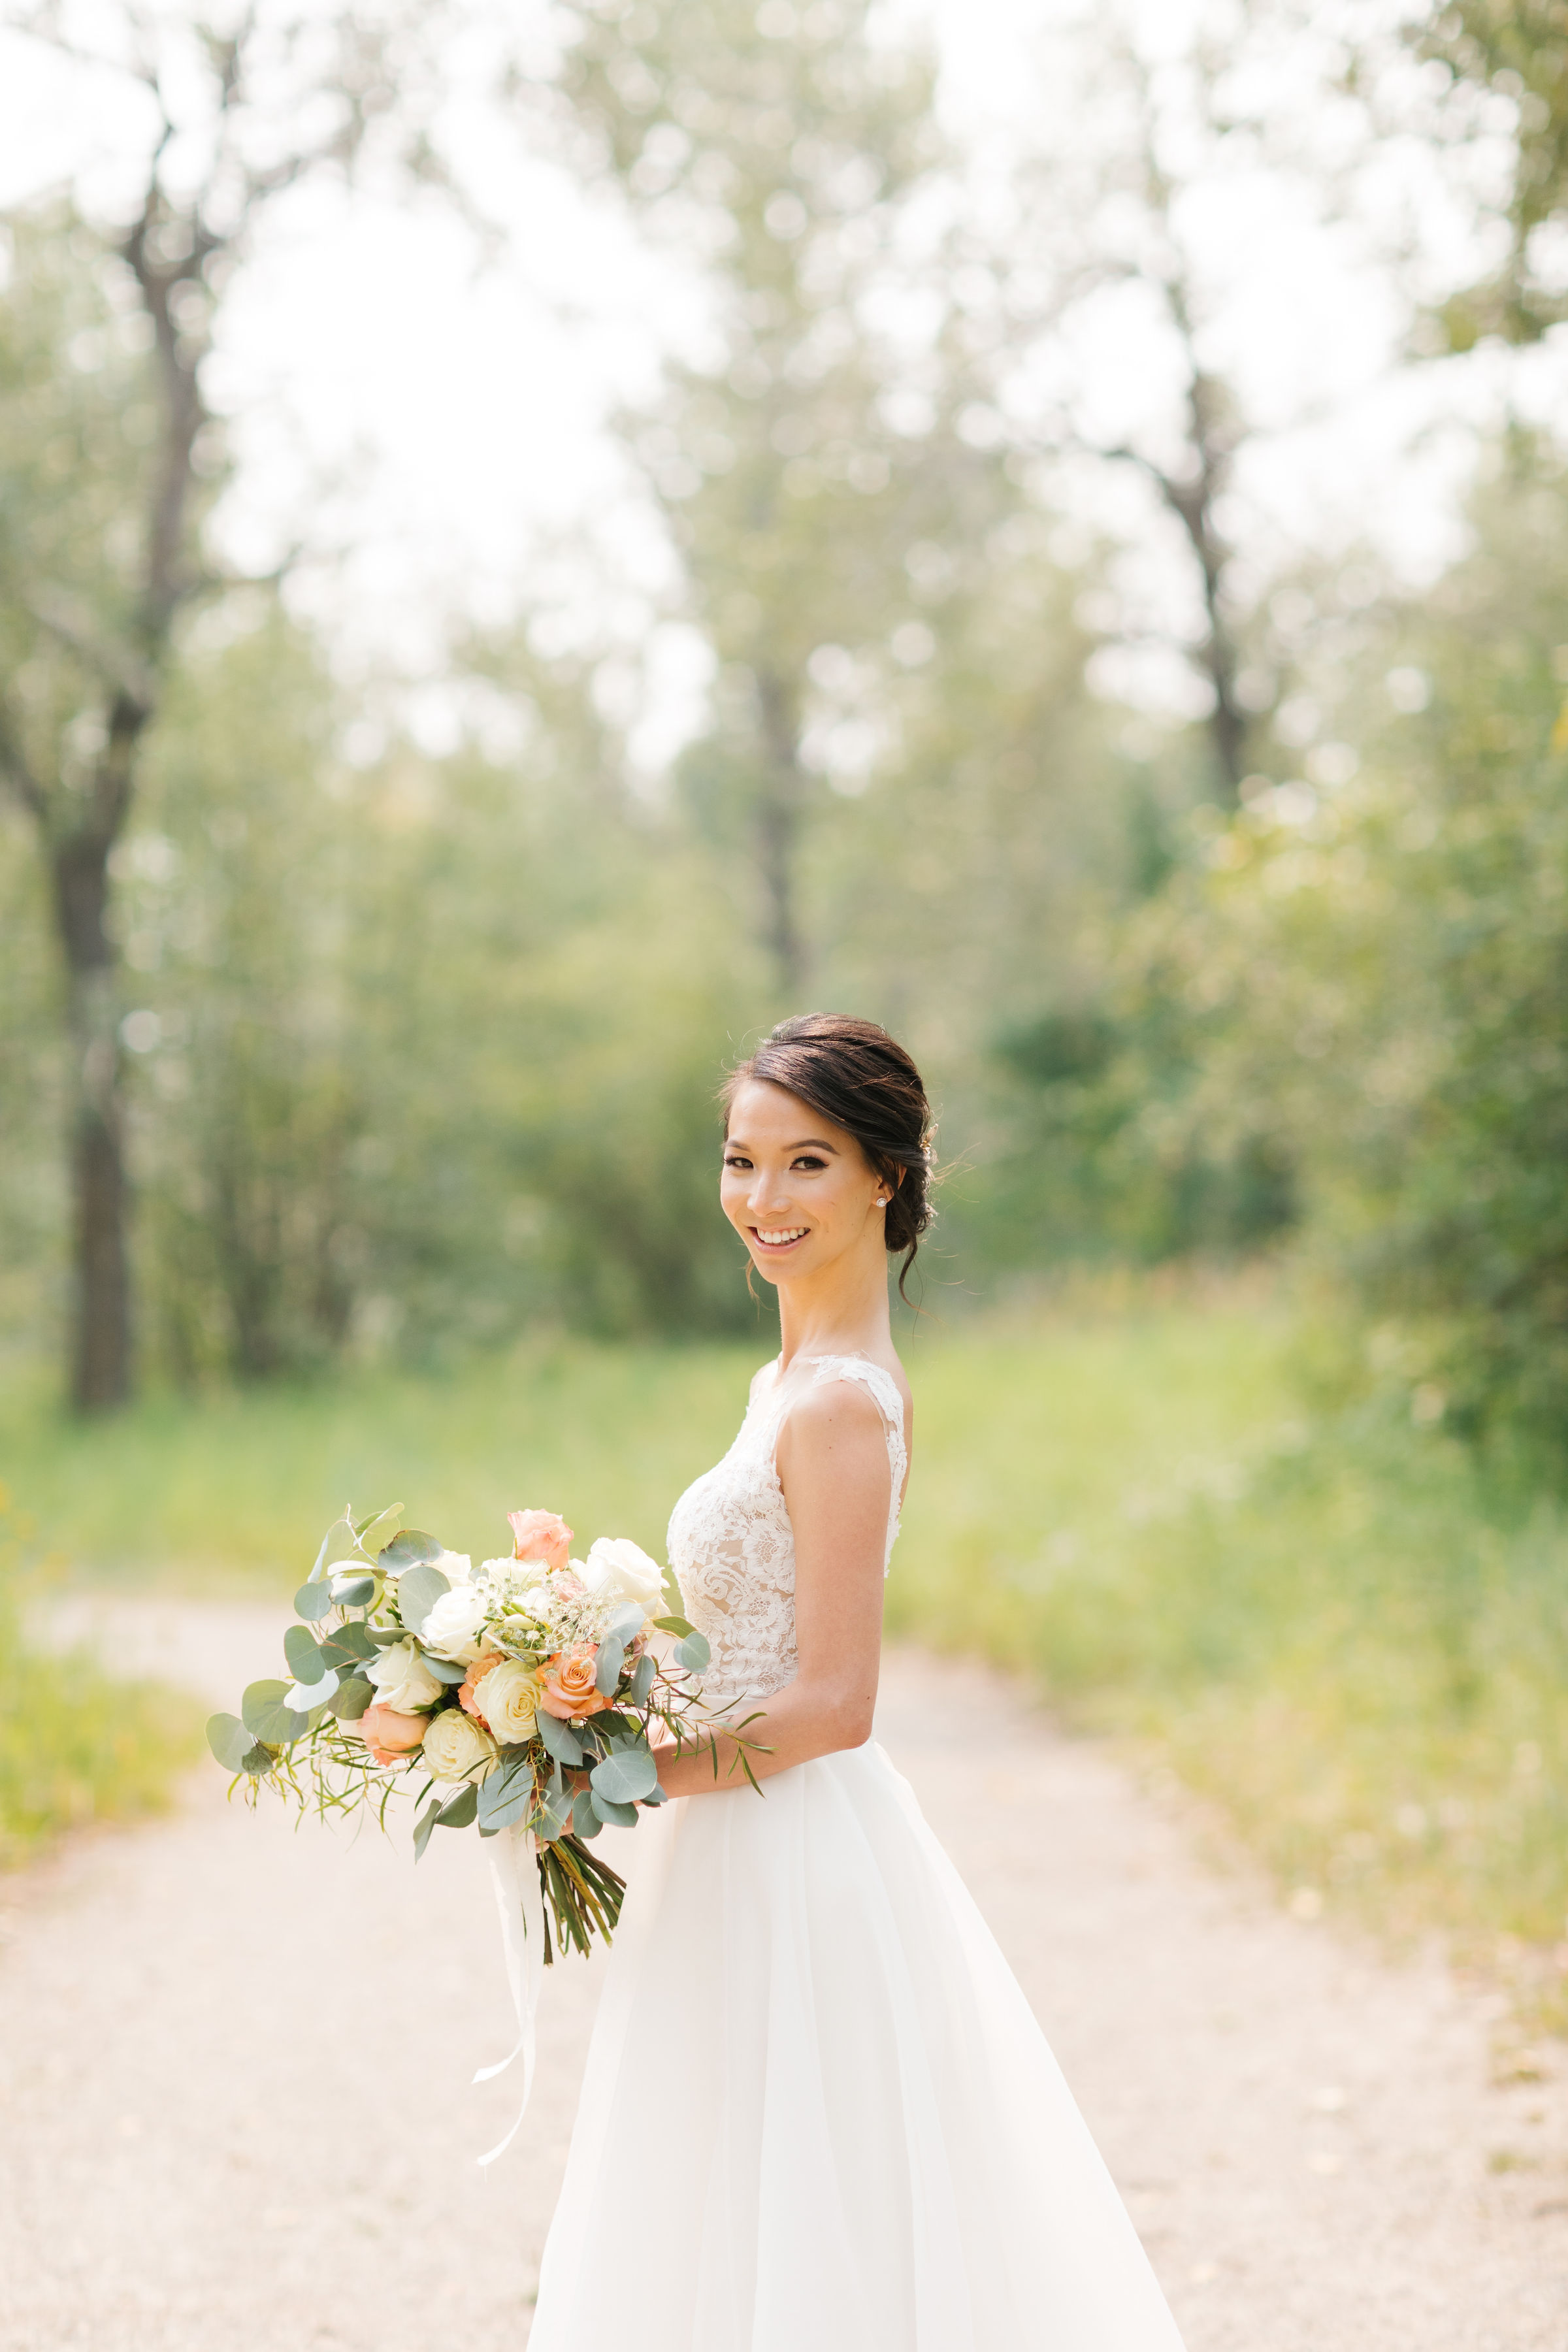 8 Tips for Choosing Your Wedding Photographer // Tips from the Pros - Shannon Yau on the Bronte Bride Blog